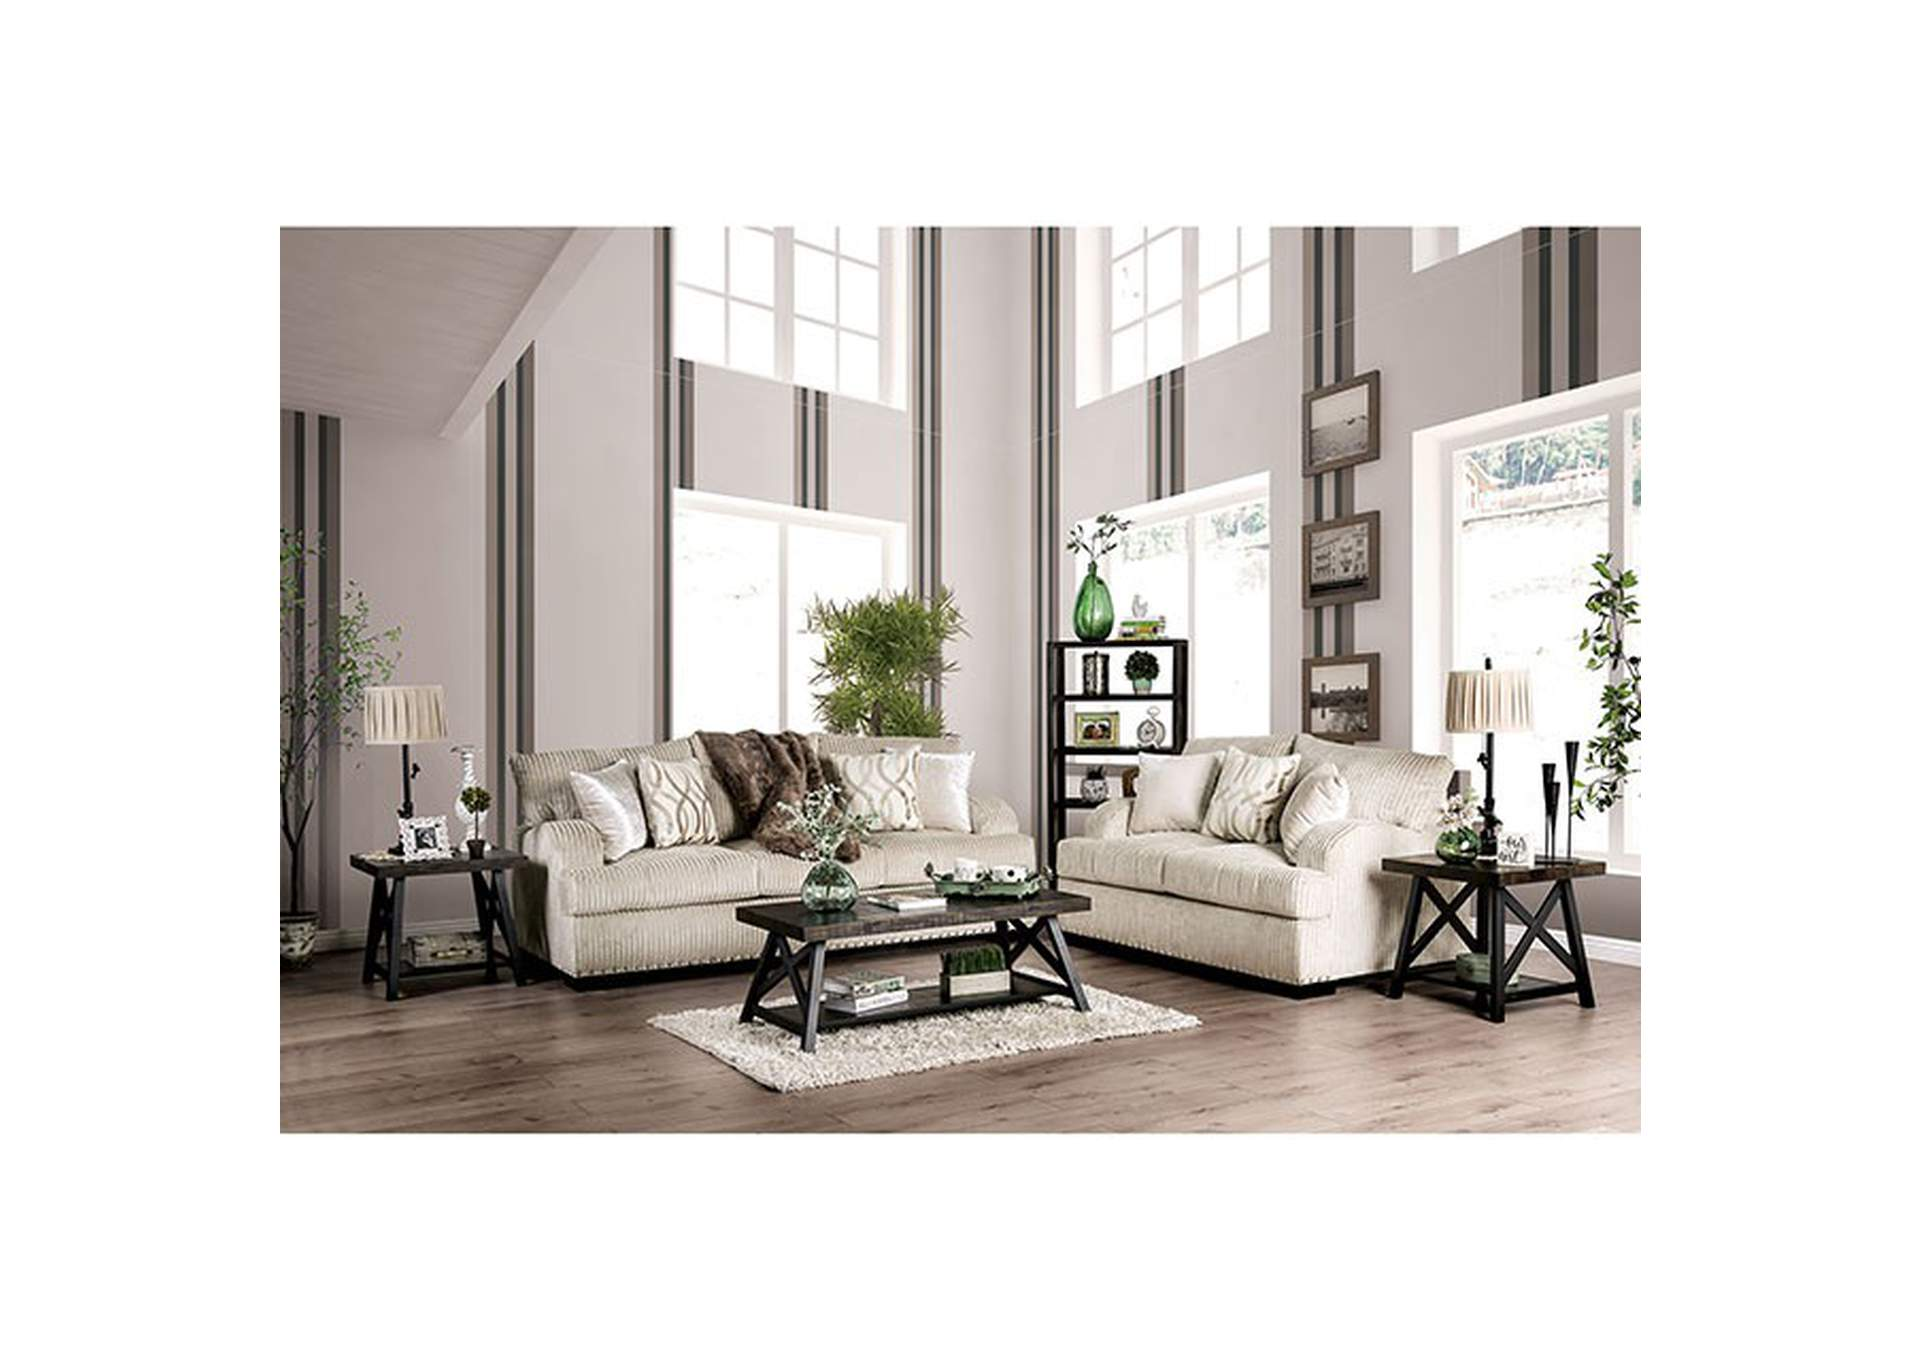 Zayla Beige Loveseat,Furniture of America